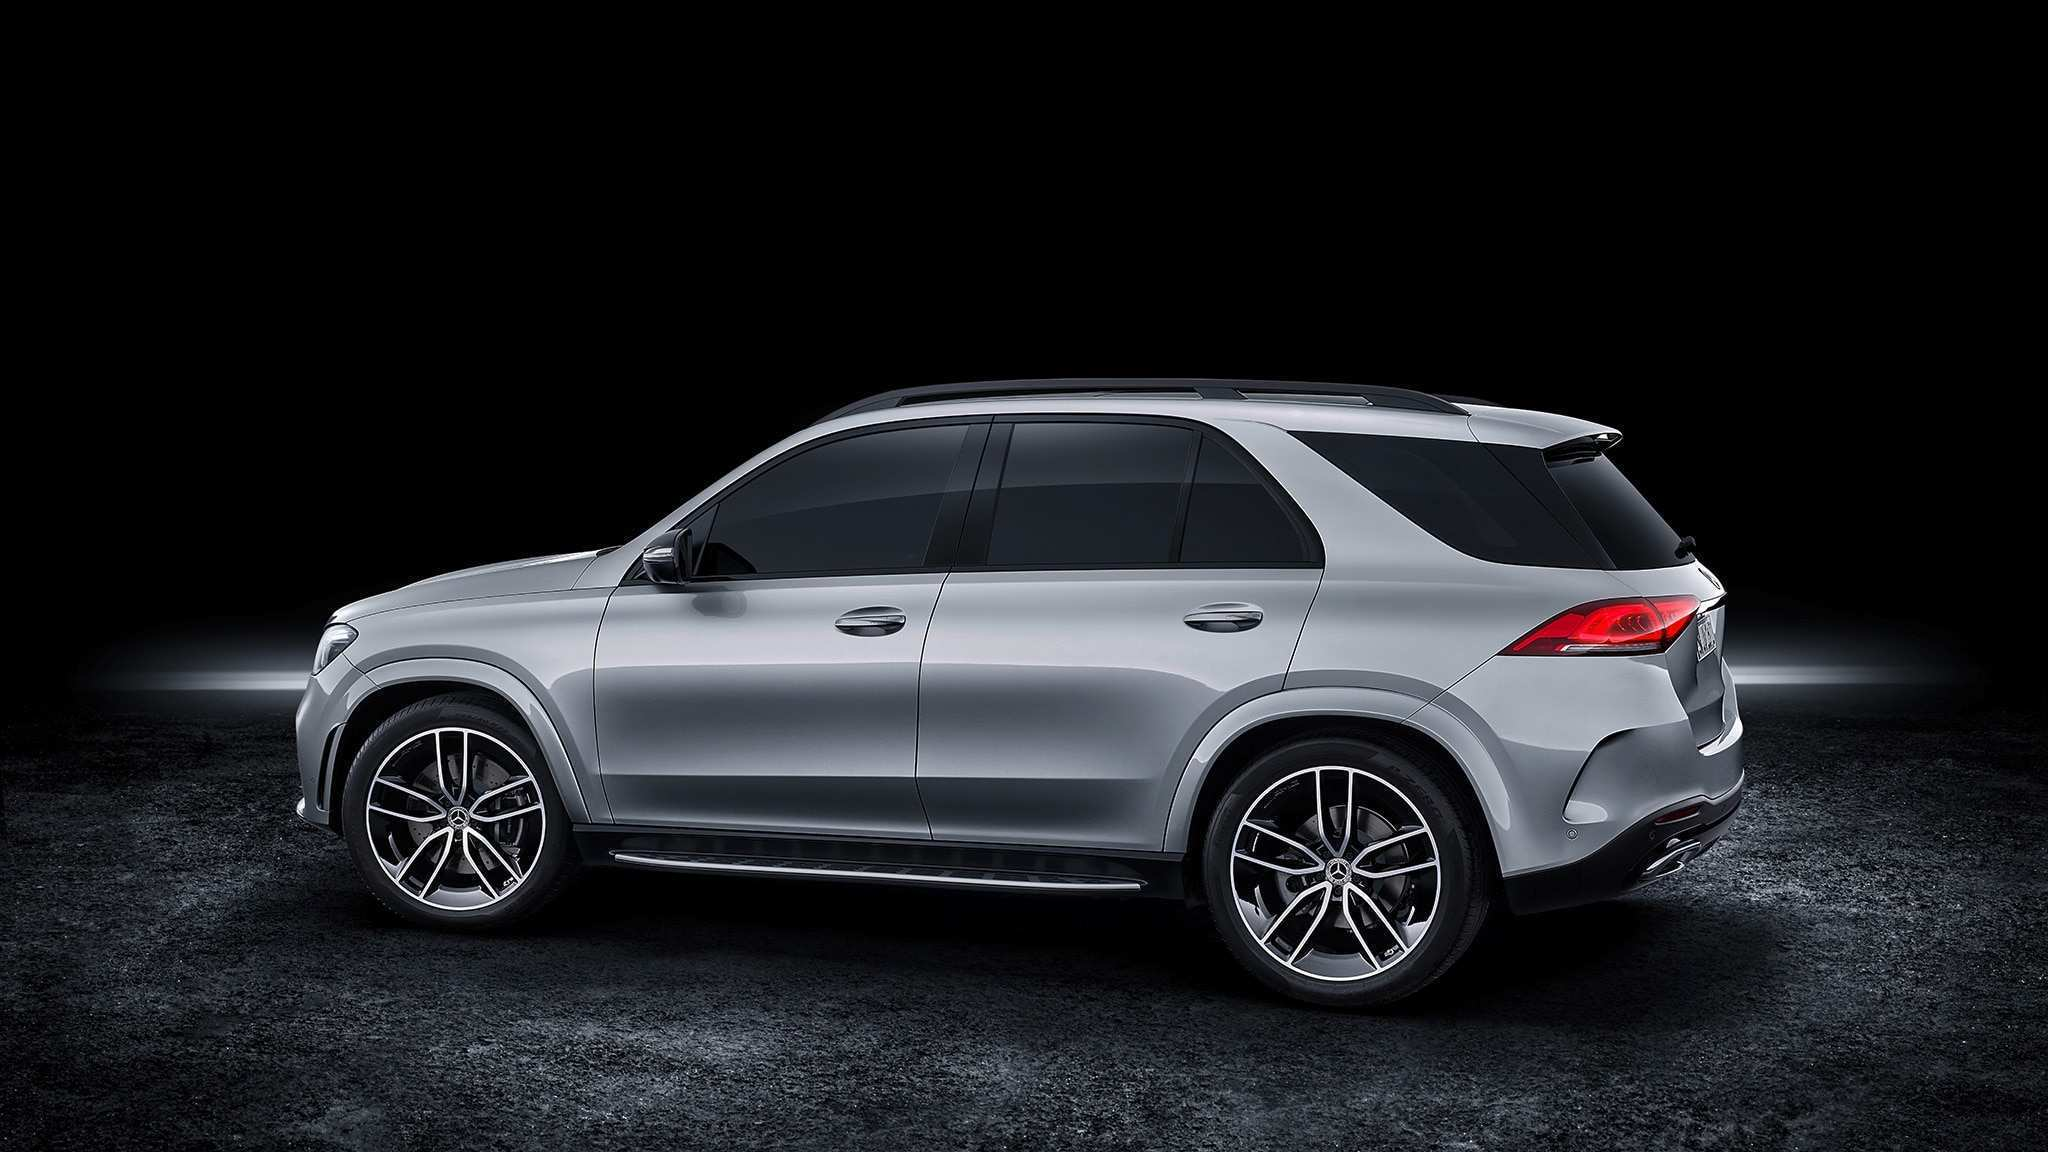 13 Gallery of 2020 Mercedes GLE New Review with 2020 Mercedes GLE